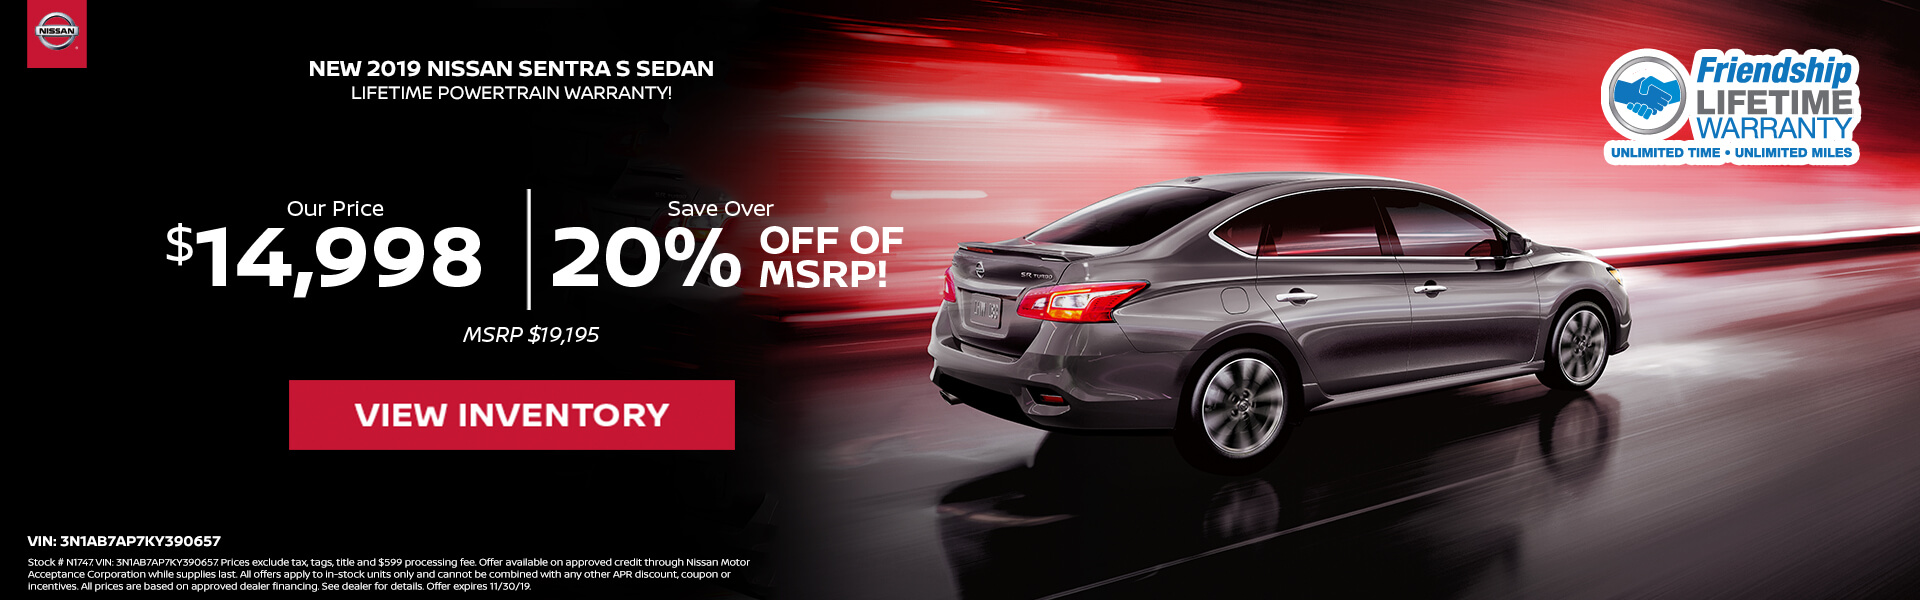 Nissan Sentra $14,998 Purchase